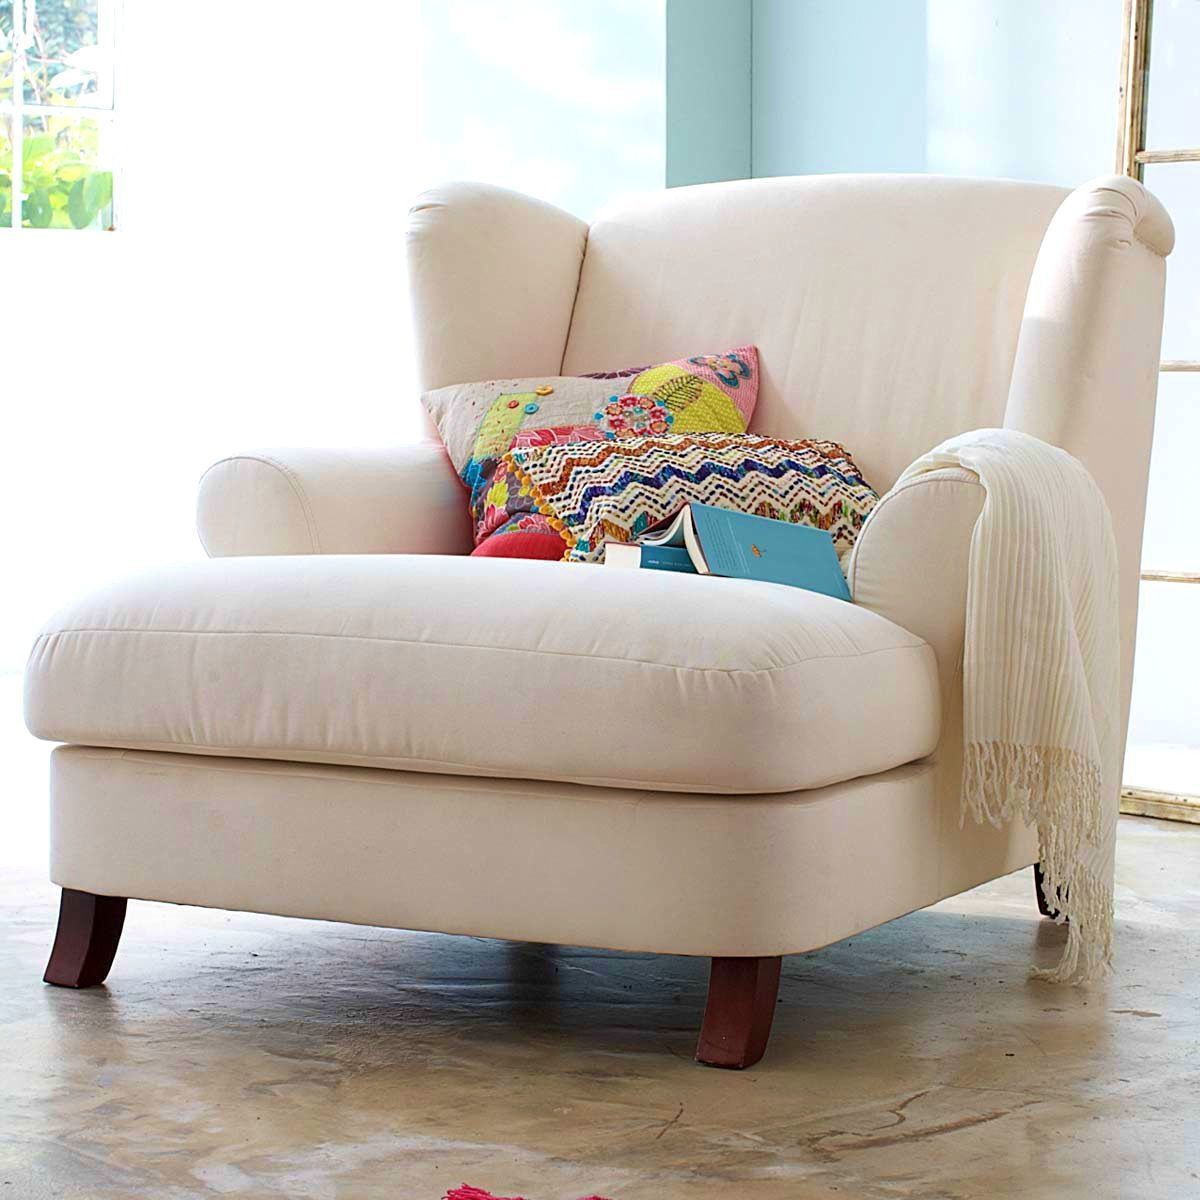 Bedroom:Sweet Images About Reading Chair Chairs Comfy For Classroom  Acdfbfcfdf Kids With Ottoman Big Most Small Australia Teen Oversized Super  Bedroom ...